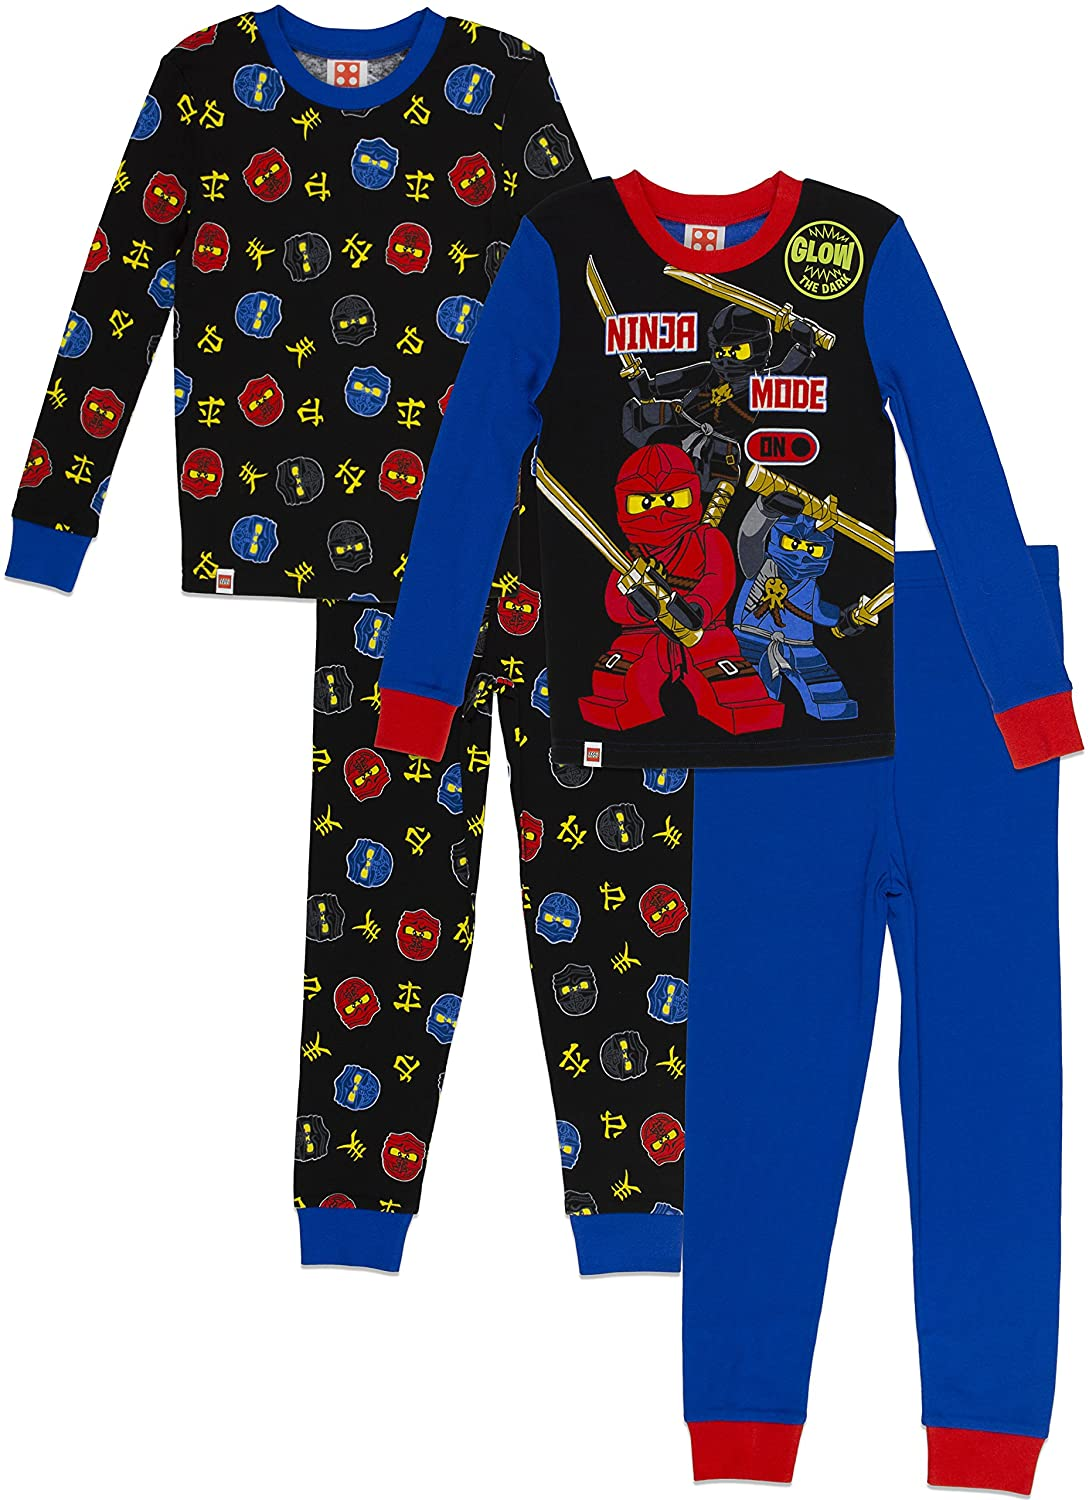 LEGO Ninjago Boys Pajama Set, 4 Piece PJ Set, Long Sleeve, Long Pant,Glow in the Dark